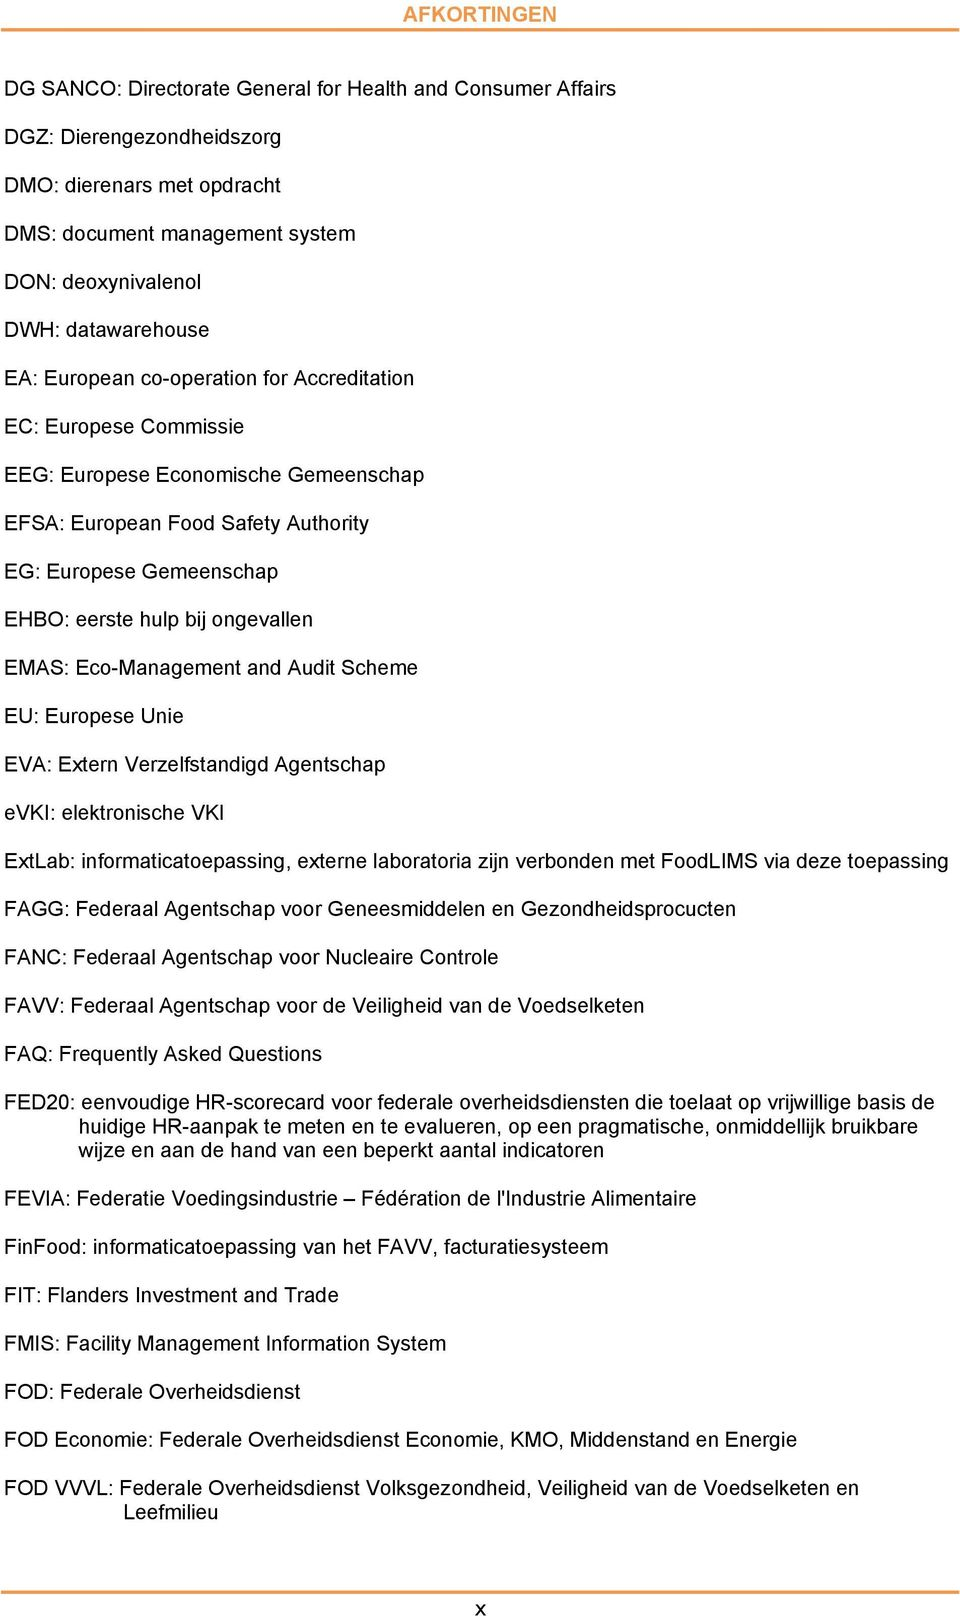 EMAS: Eco-Management and Audit Scheme EU: Europese Unie EVA: Extern Verzelfstandigd Agentschap evki: elektronische VKI ExtLab: informaticatoepassing, externe laboratoria zijn verbonden met FoodLIMS